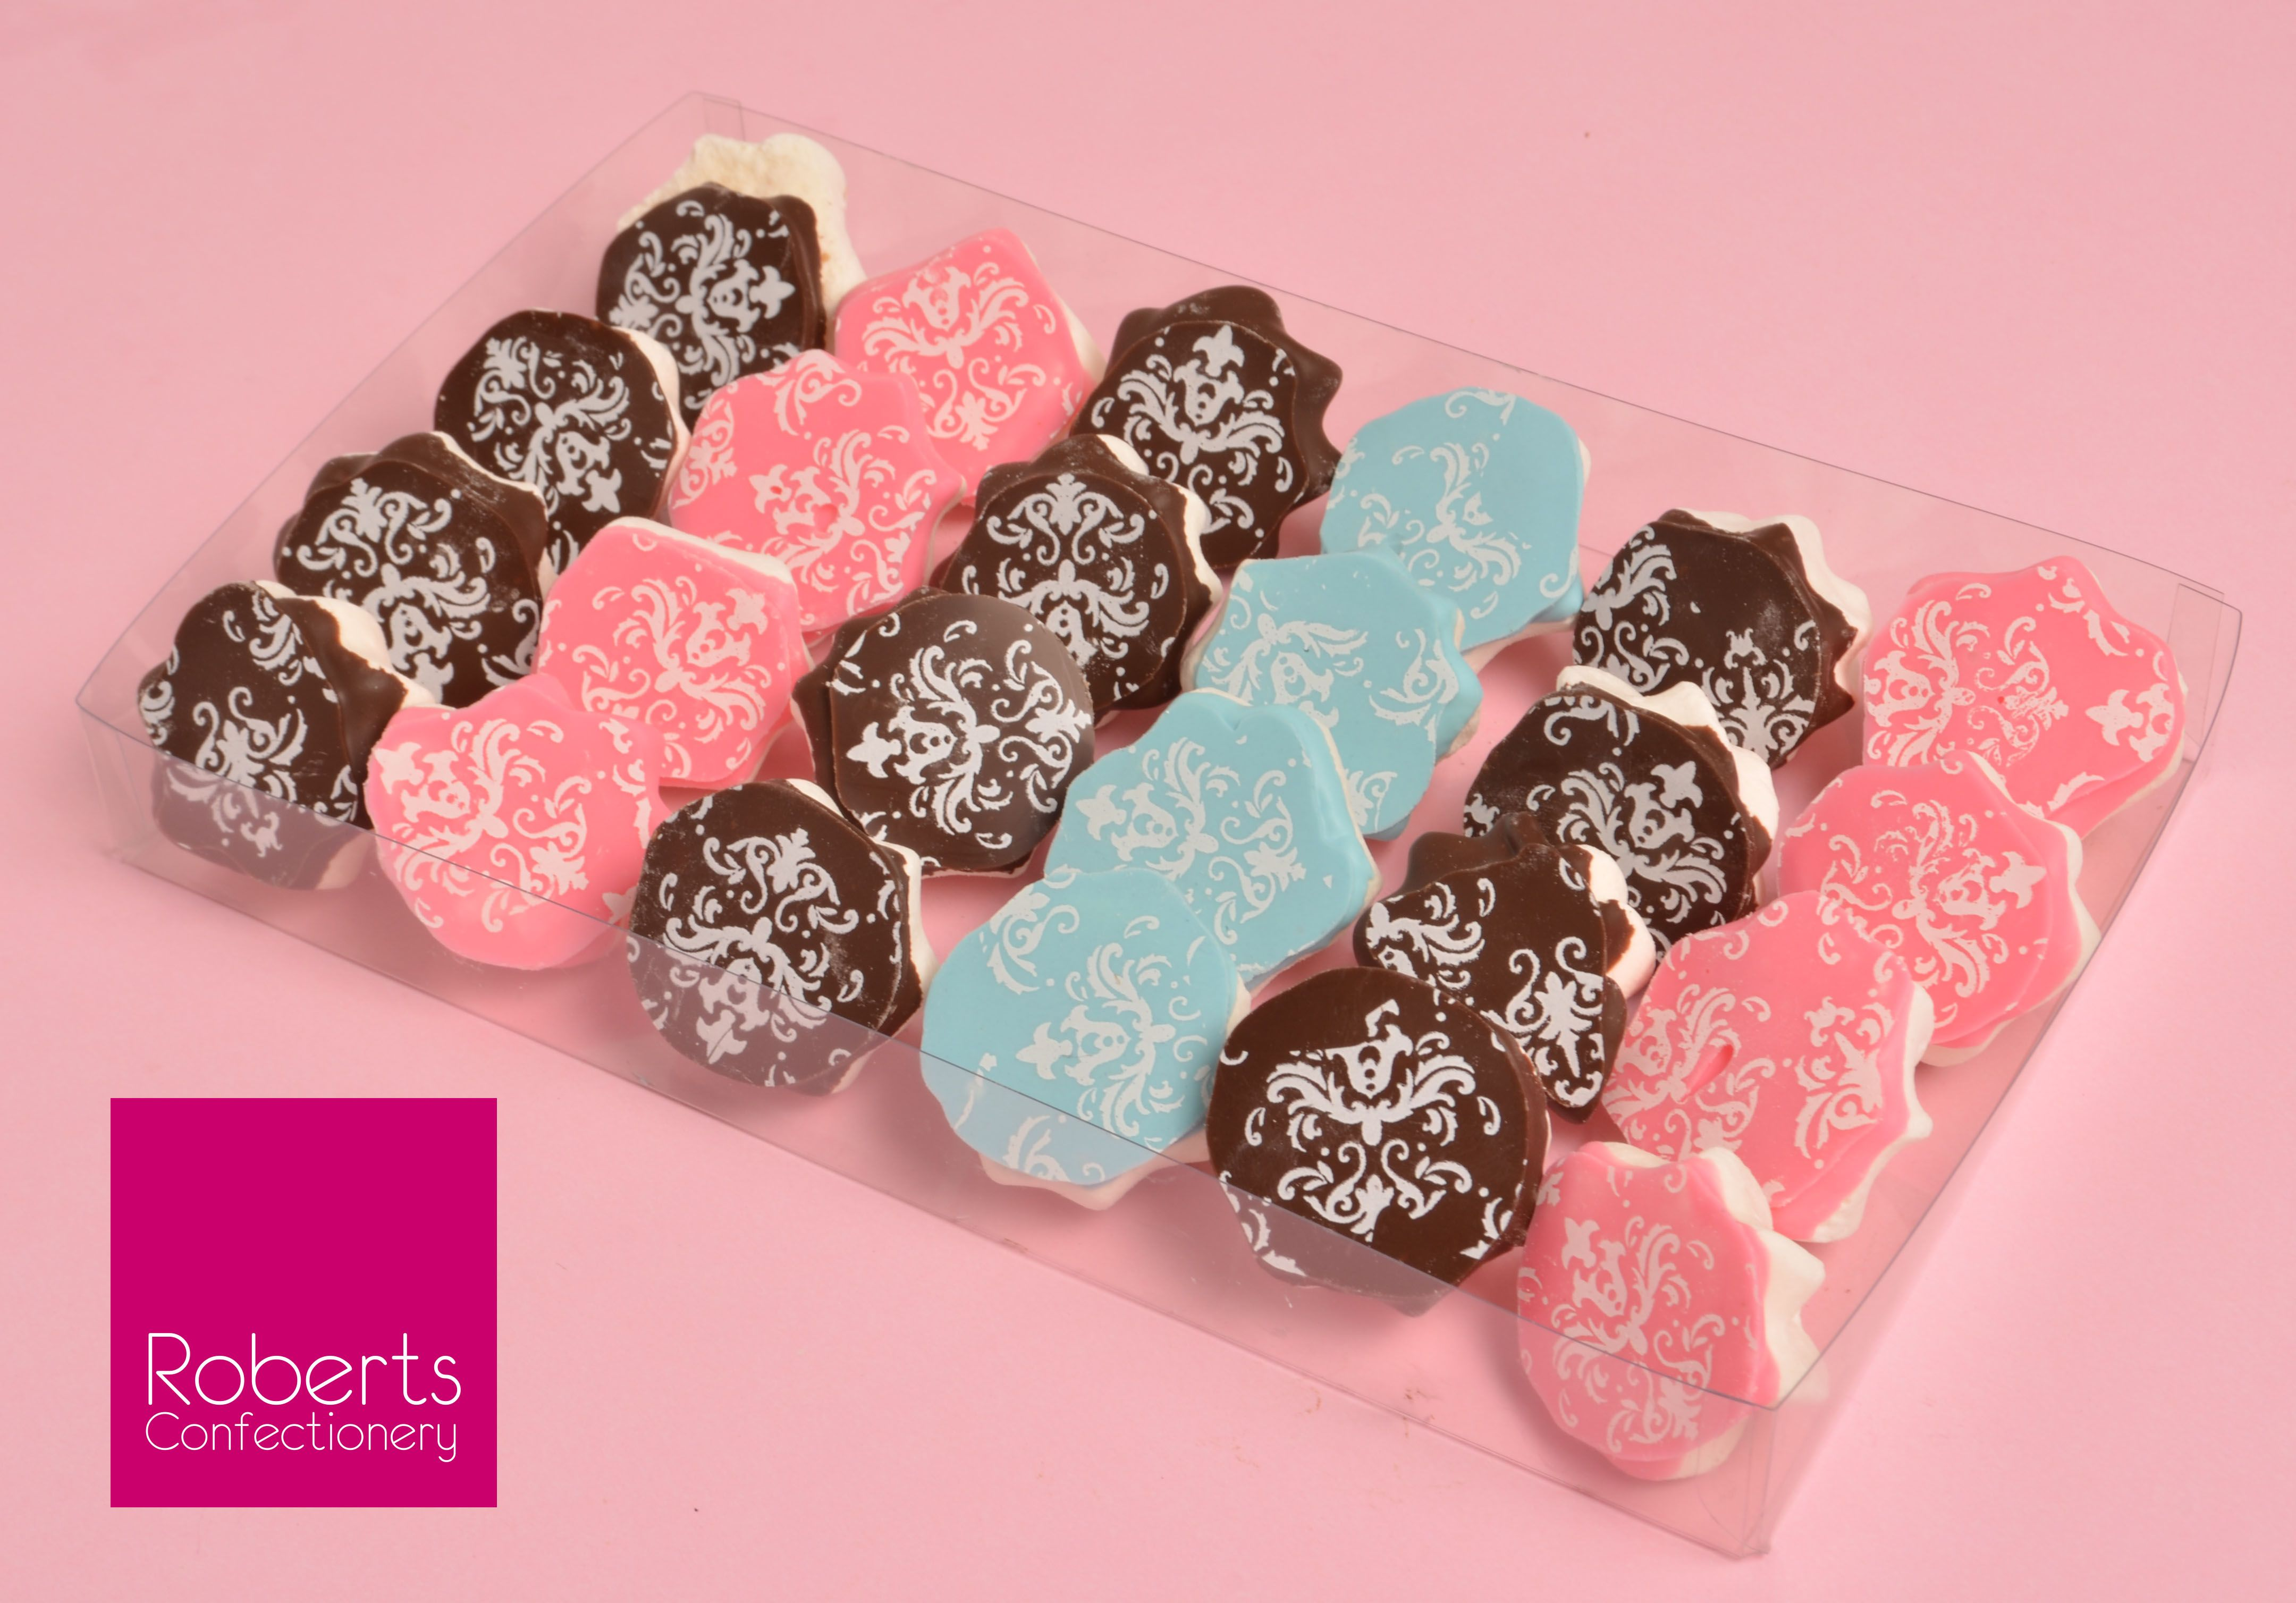 Meringues Dipped In Roberts Confectionery Chocolate And